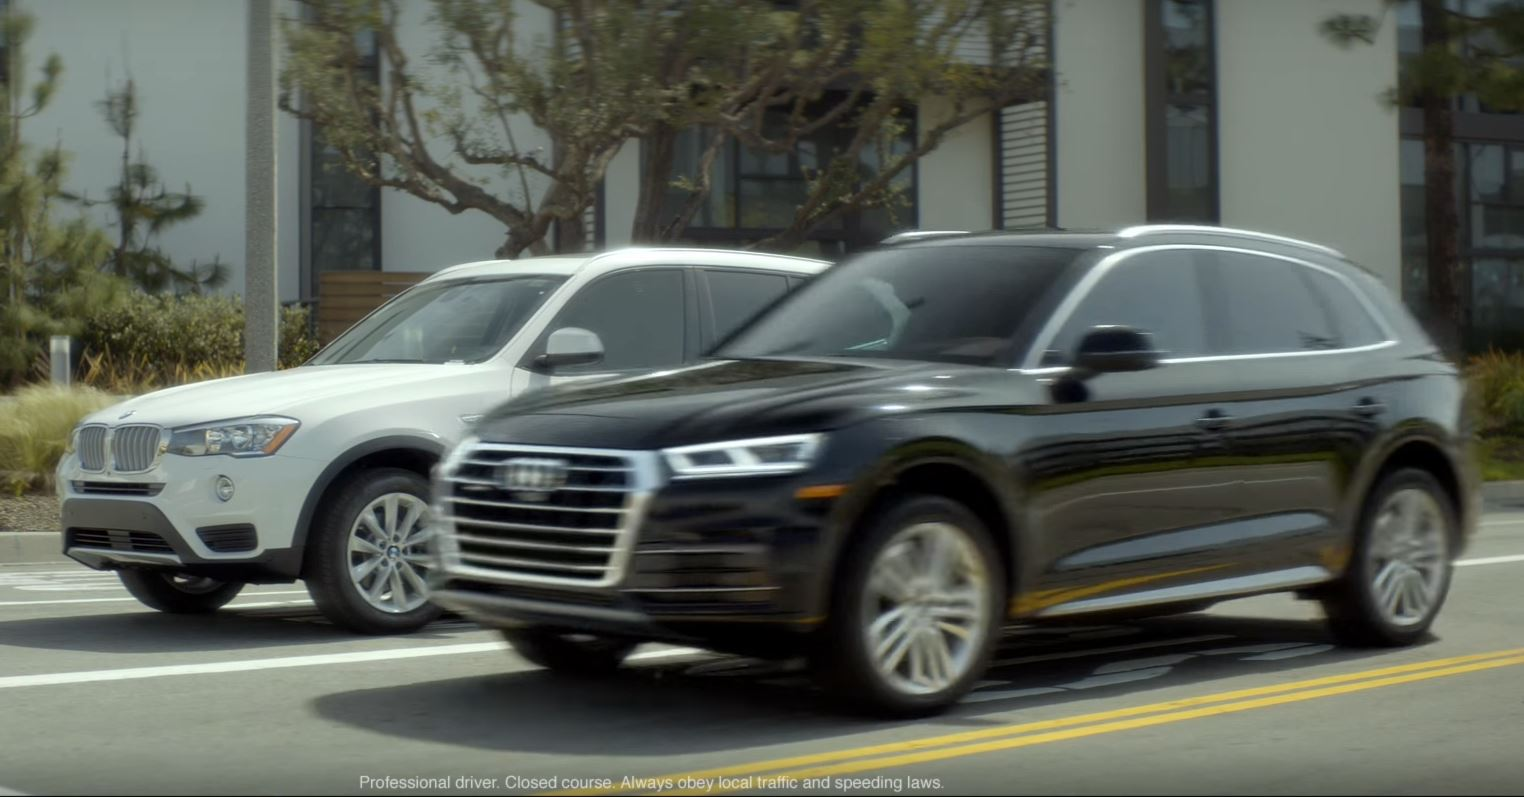 2018 Audi Q5 Thinks It's Much Better than the BMW X3 in Latest Commercials - autoevolution